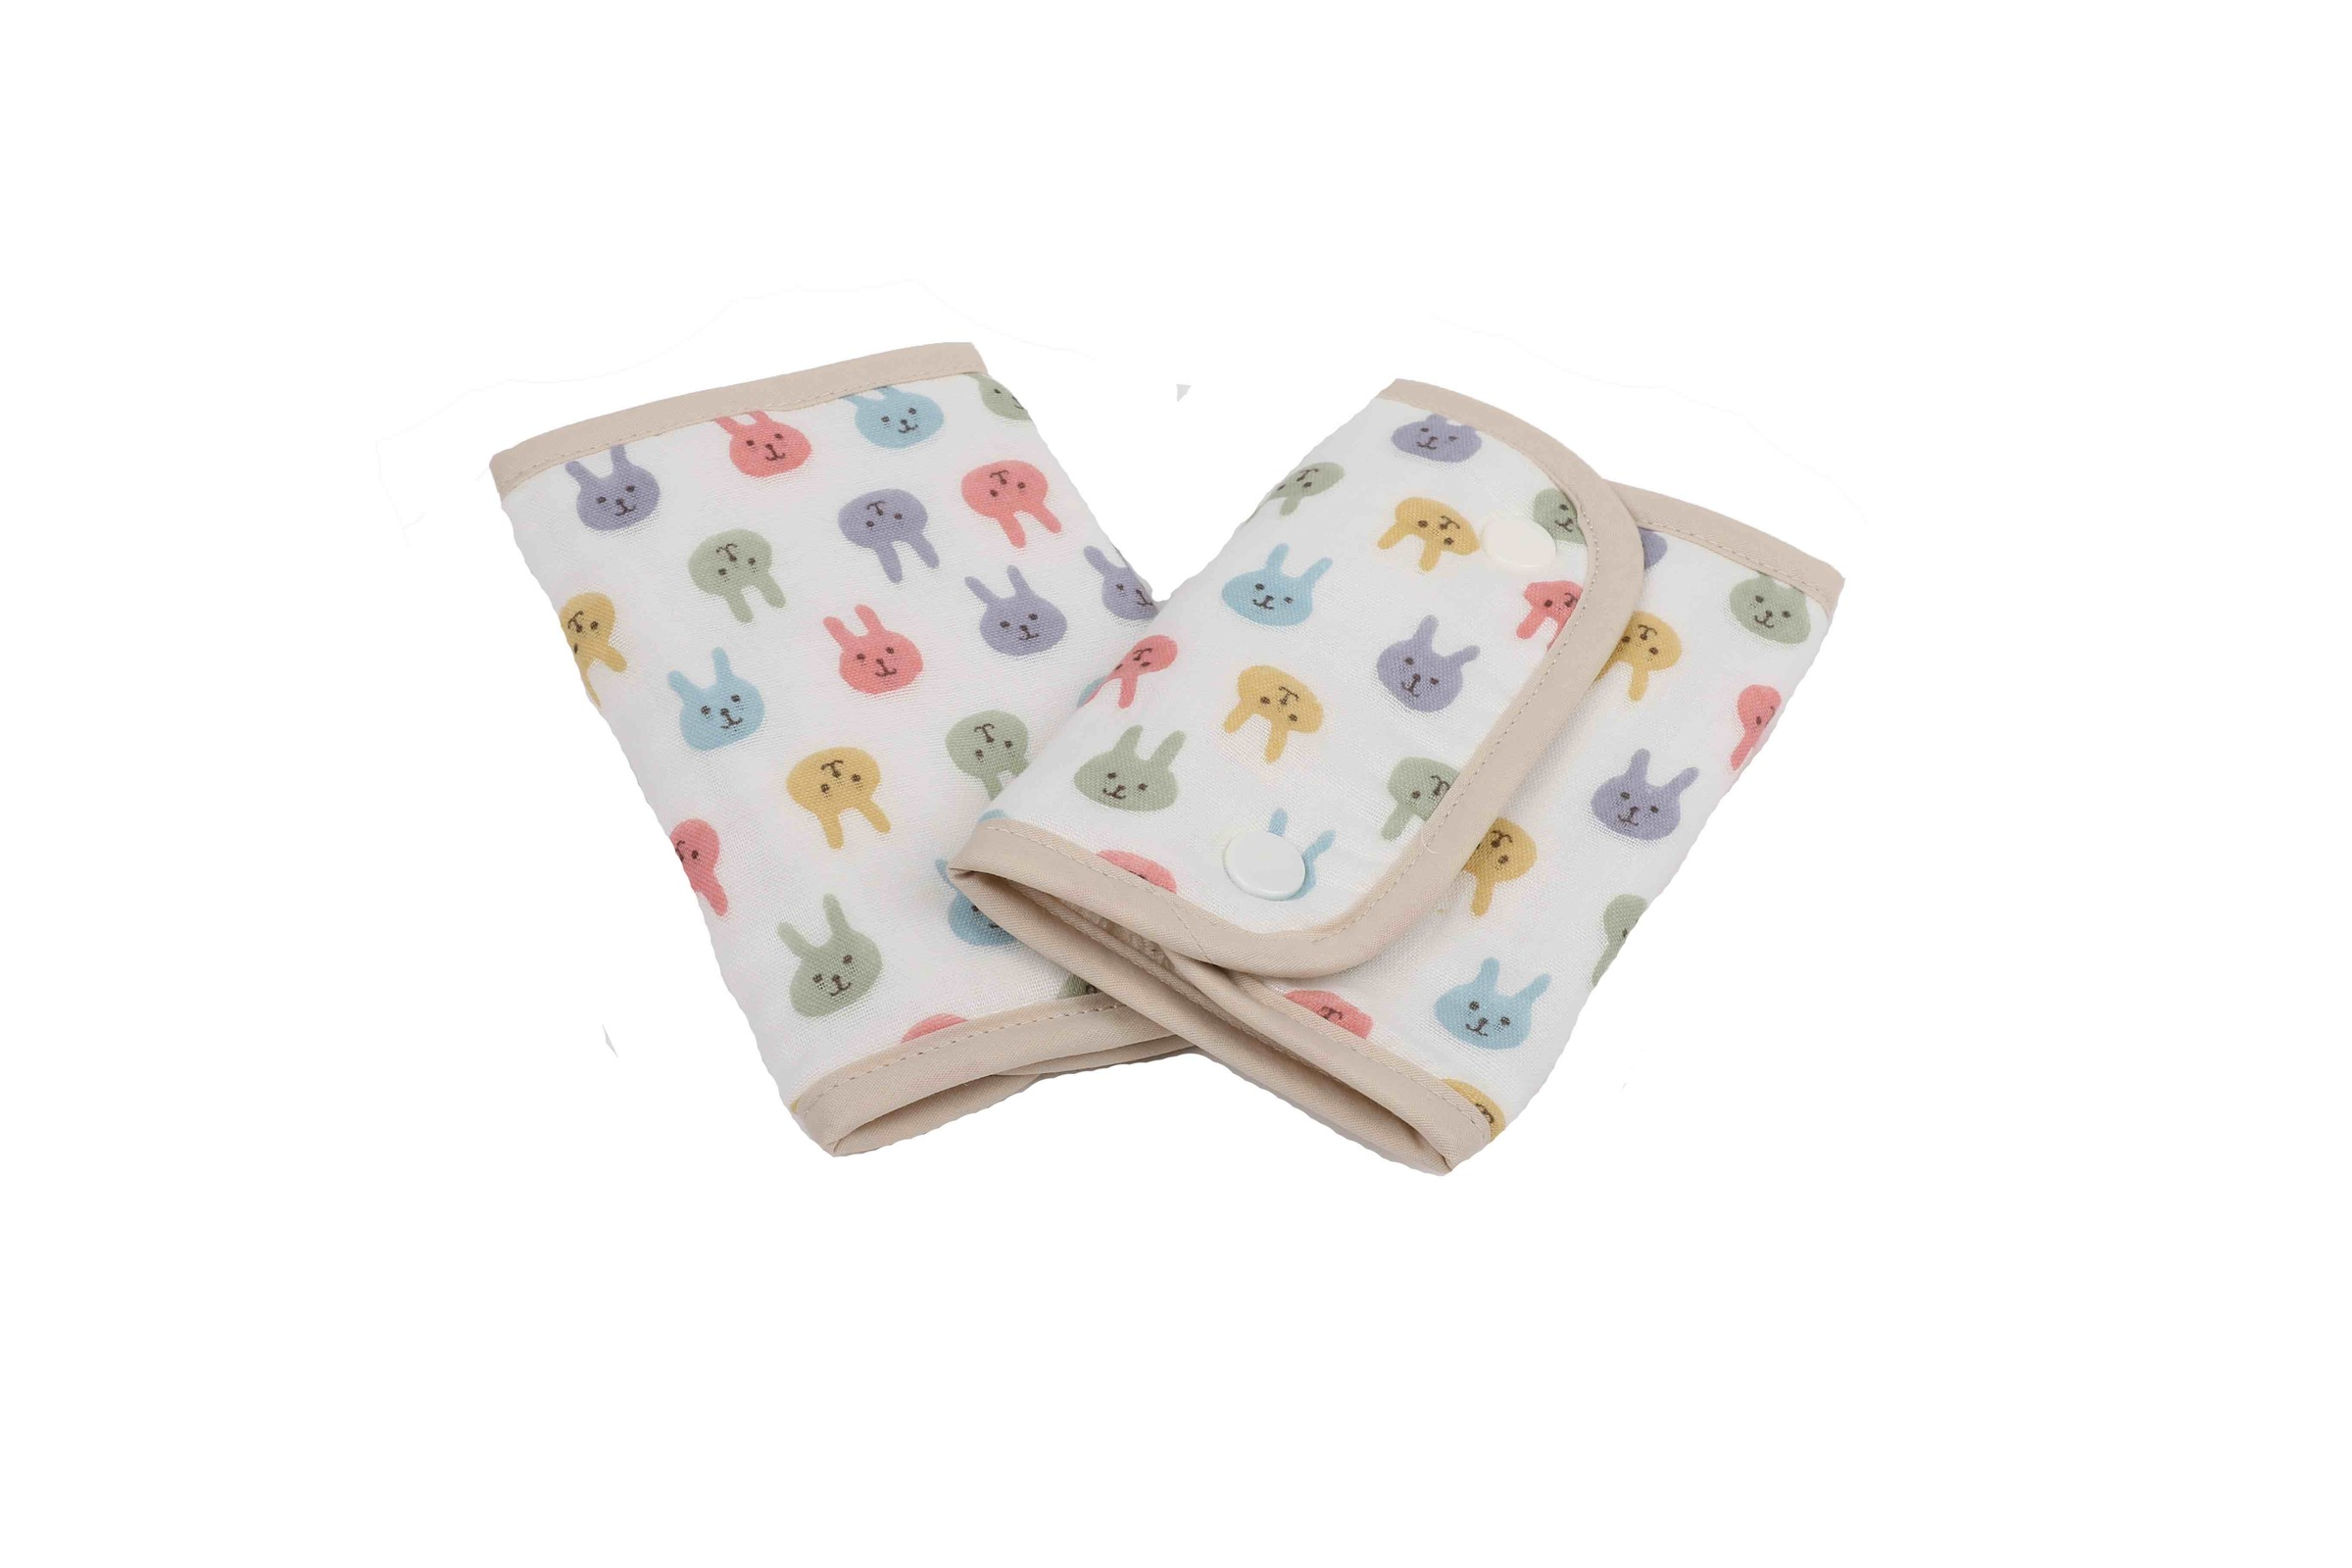 Buddy Buddy Teething Pad - Rabbit (Beige)